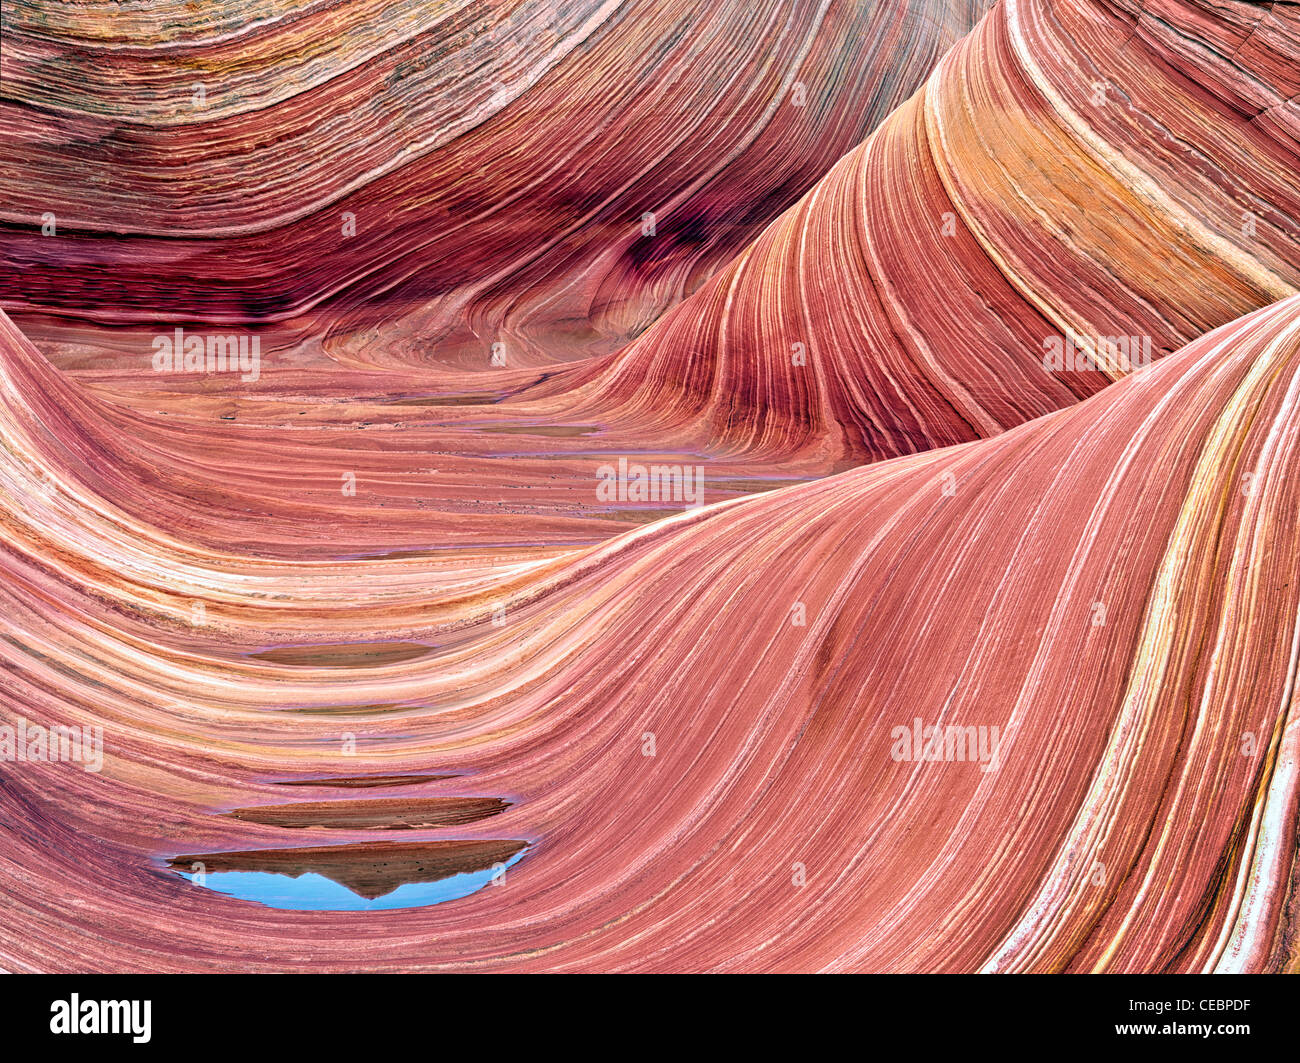 Sandtone Formation And Pool Of Water In North Coyote Buttes The Stock Photo Alamy